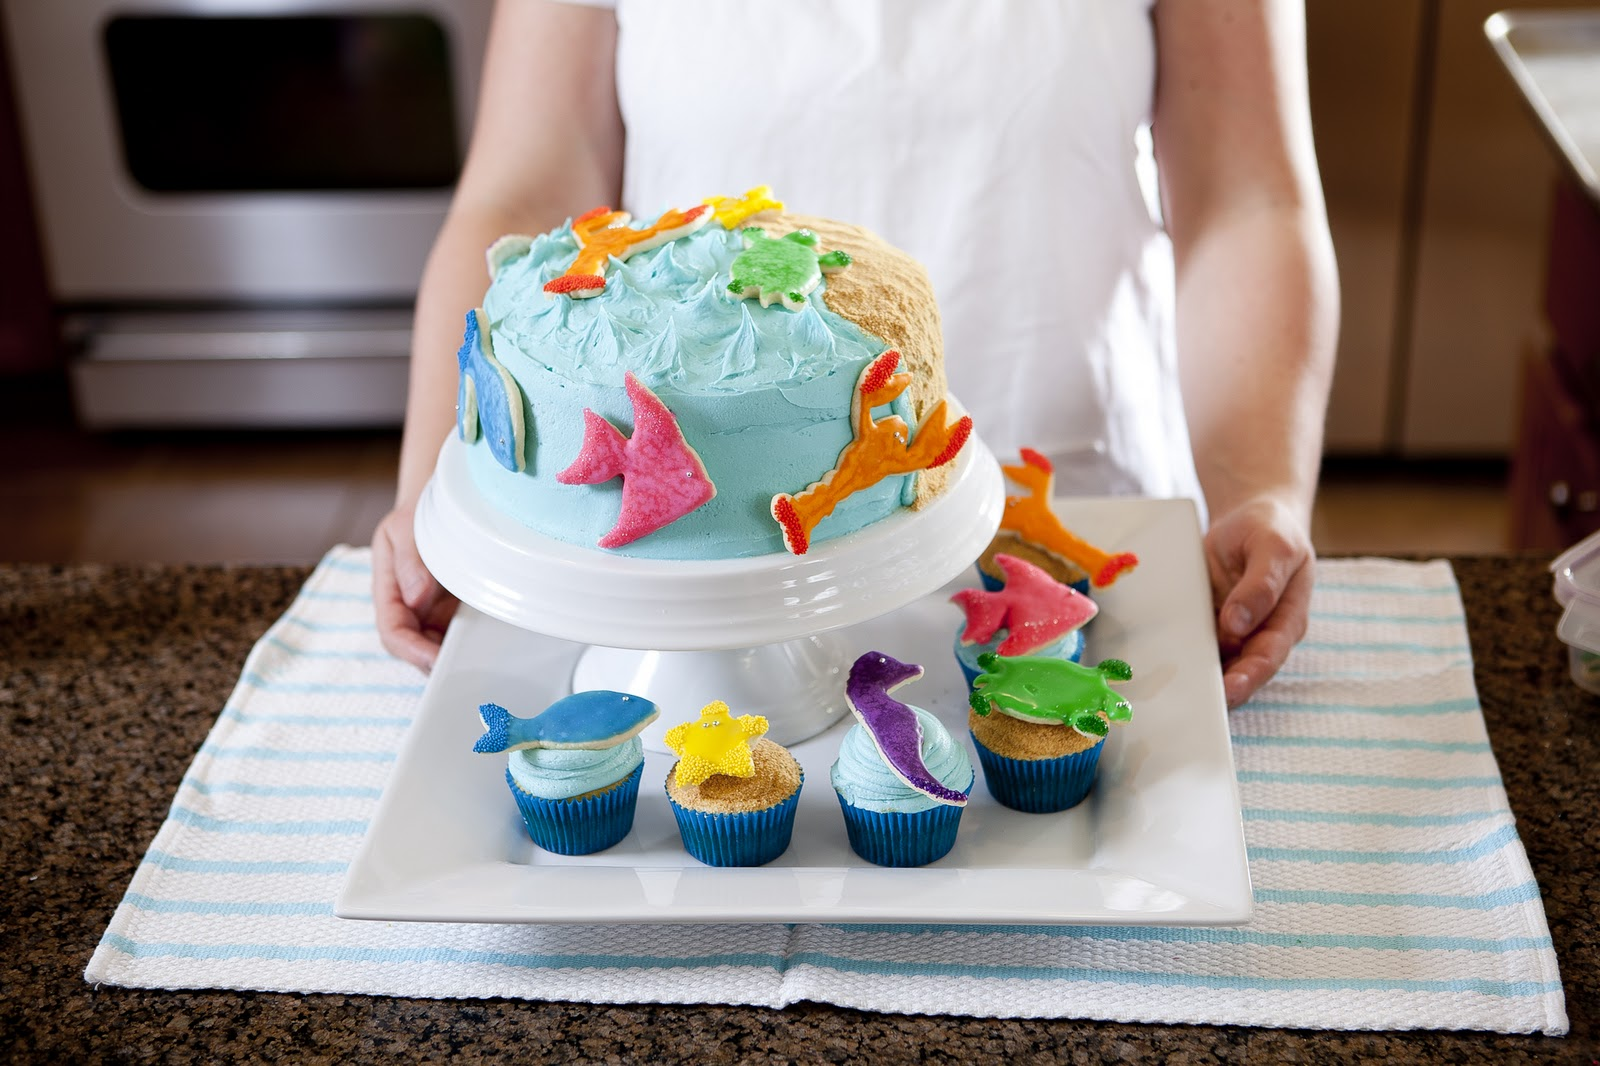 Birthday Cake13 - Under the Sea Cake.jpg